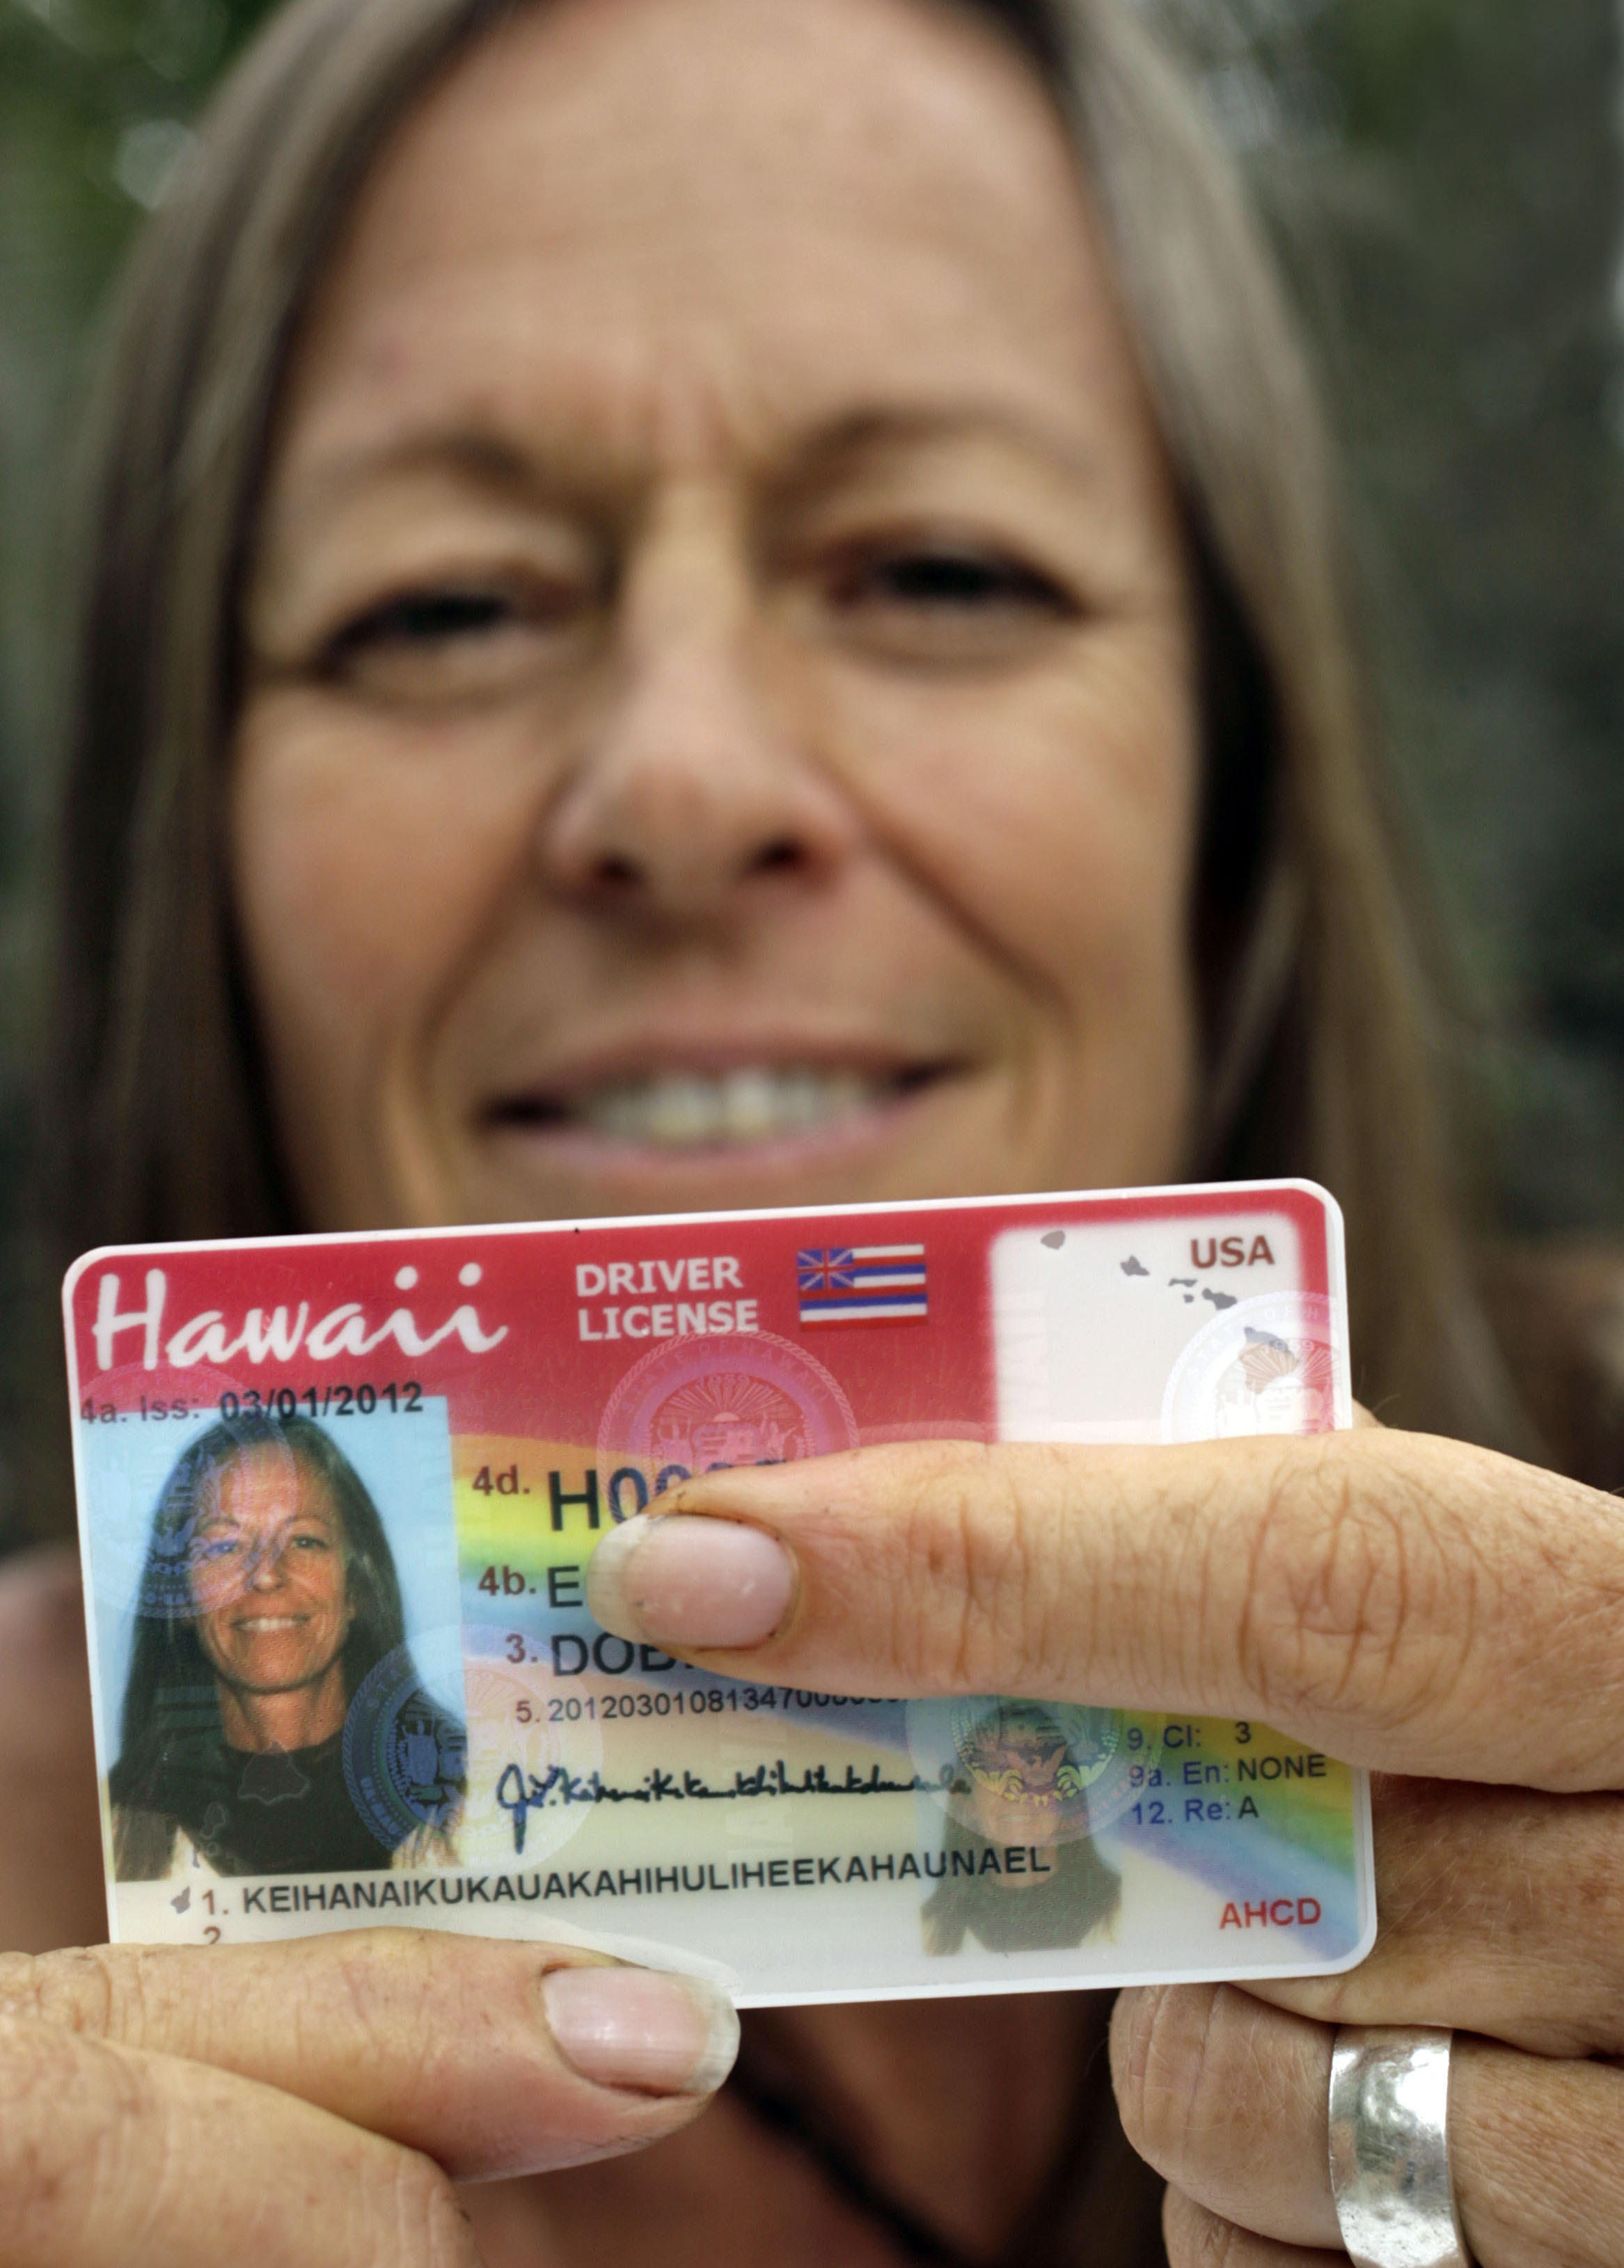 Prairie Fit Hawaiian Gets 36-character Ids Last Her Broadcasting That Woman Name Public